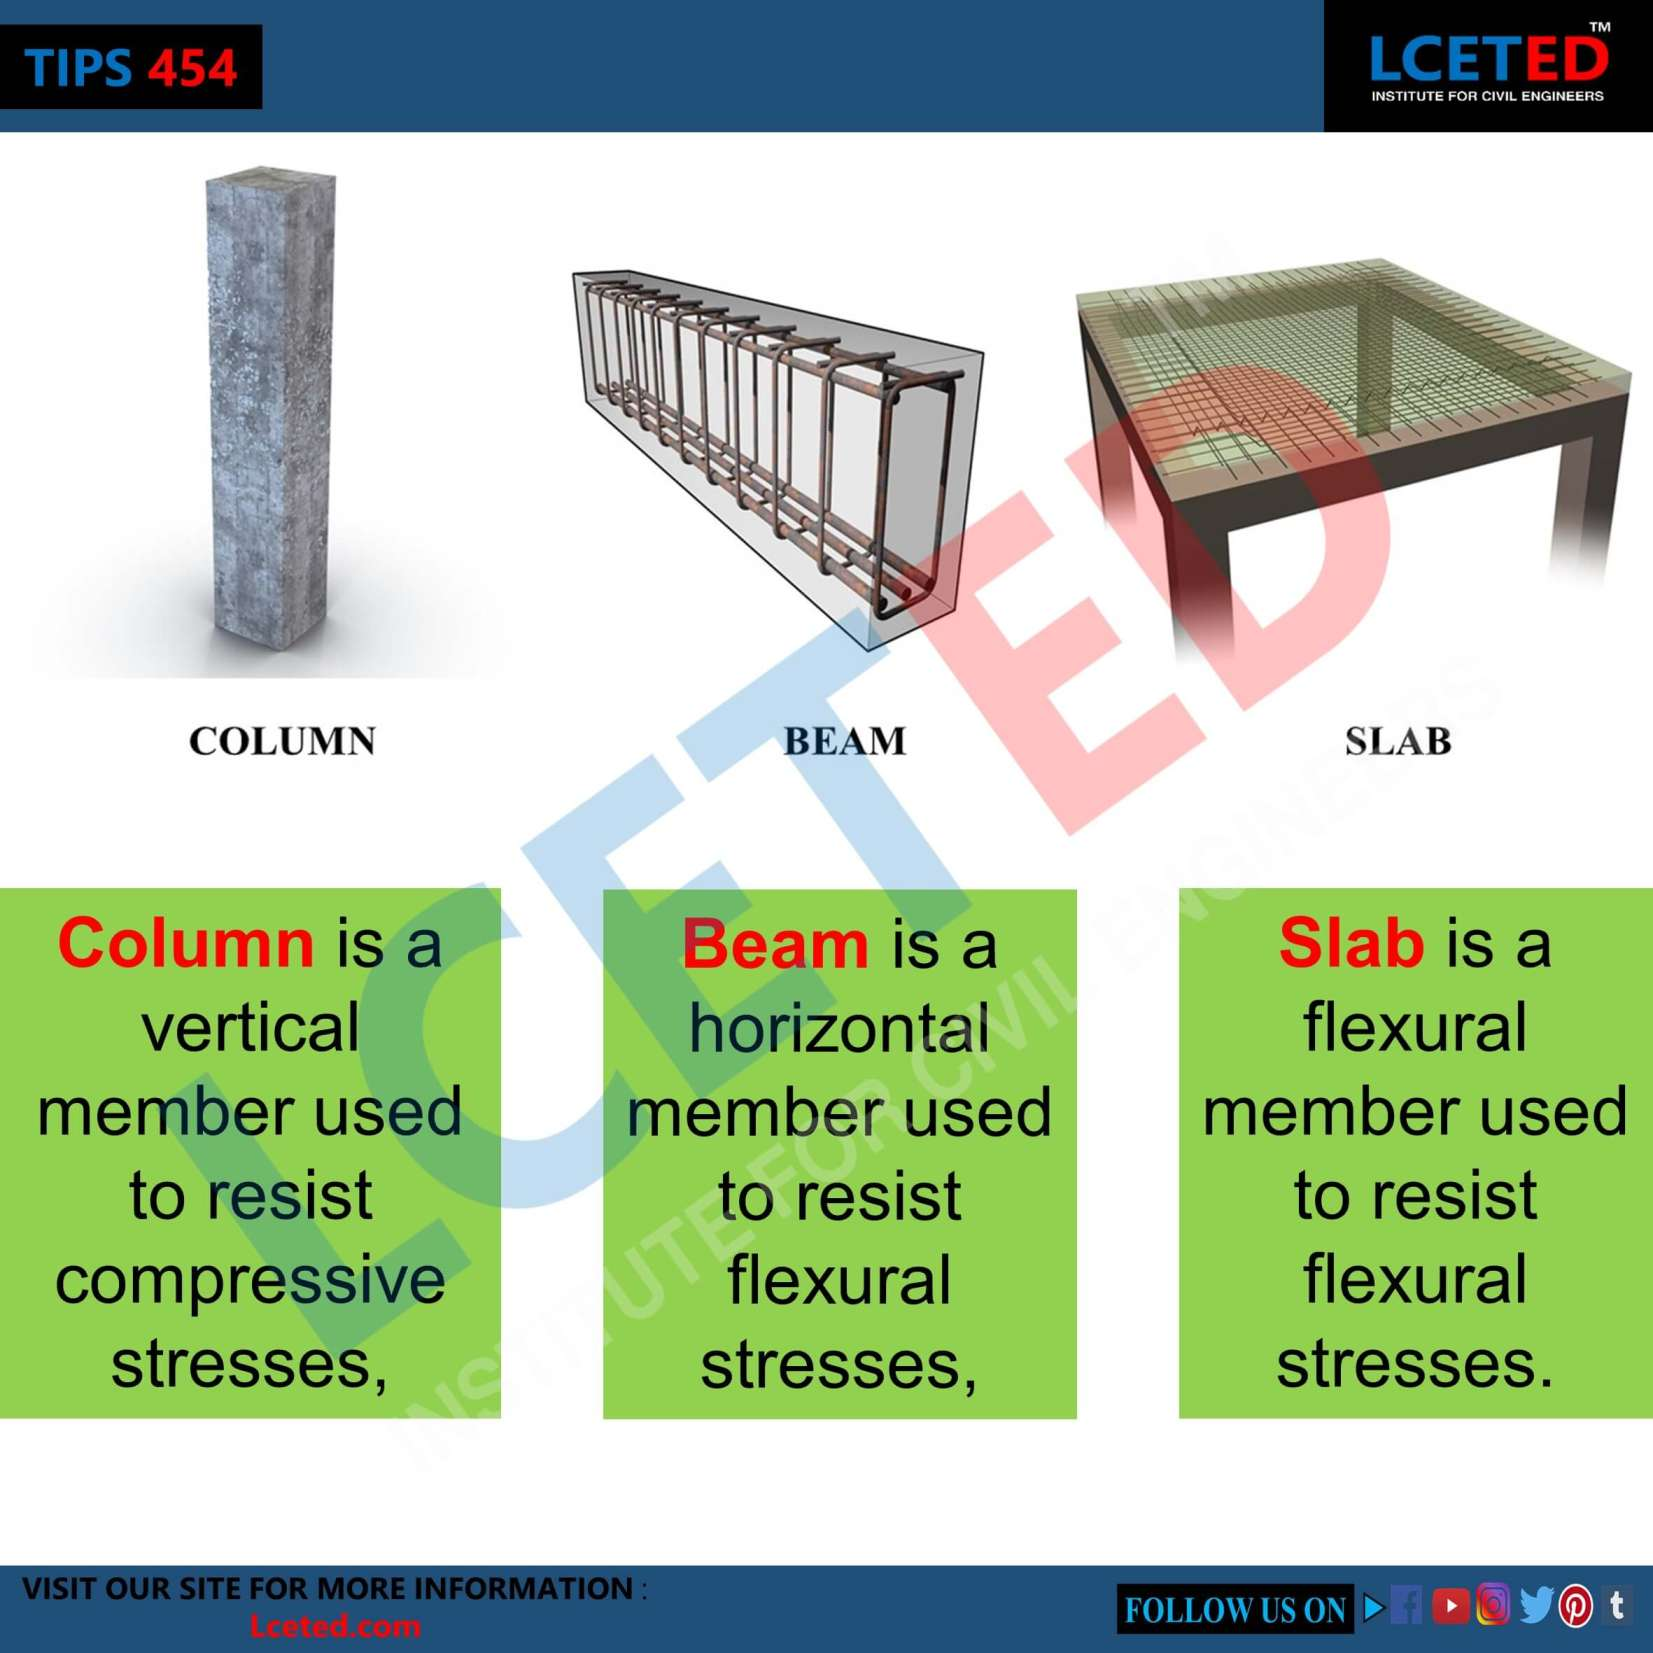 WHAT IS BEAM, COLUMN AND SLAB